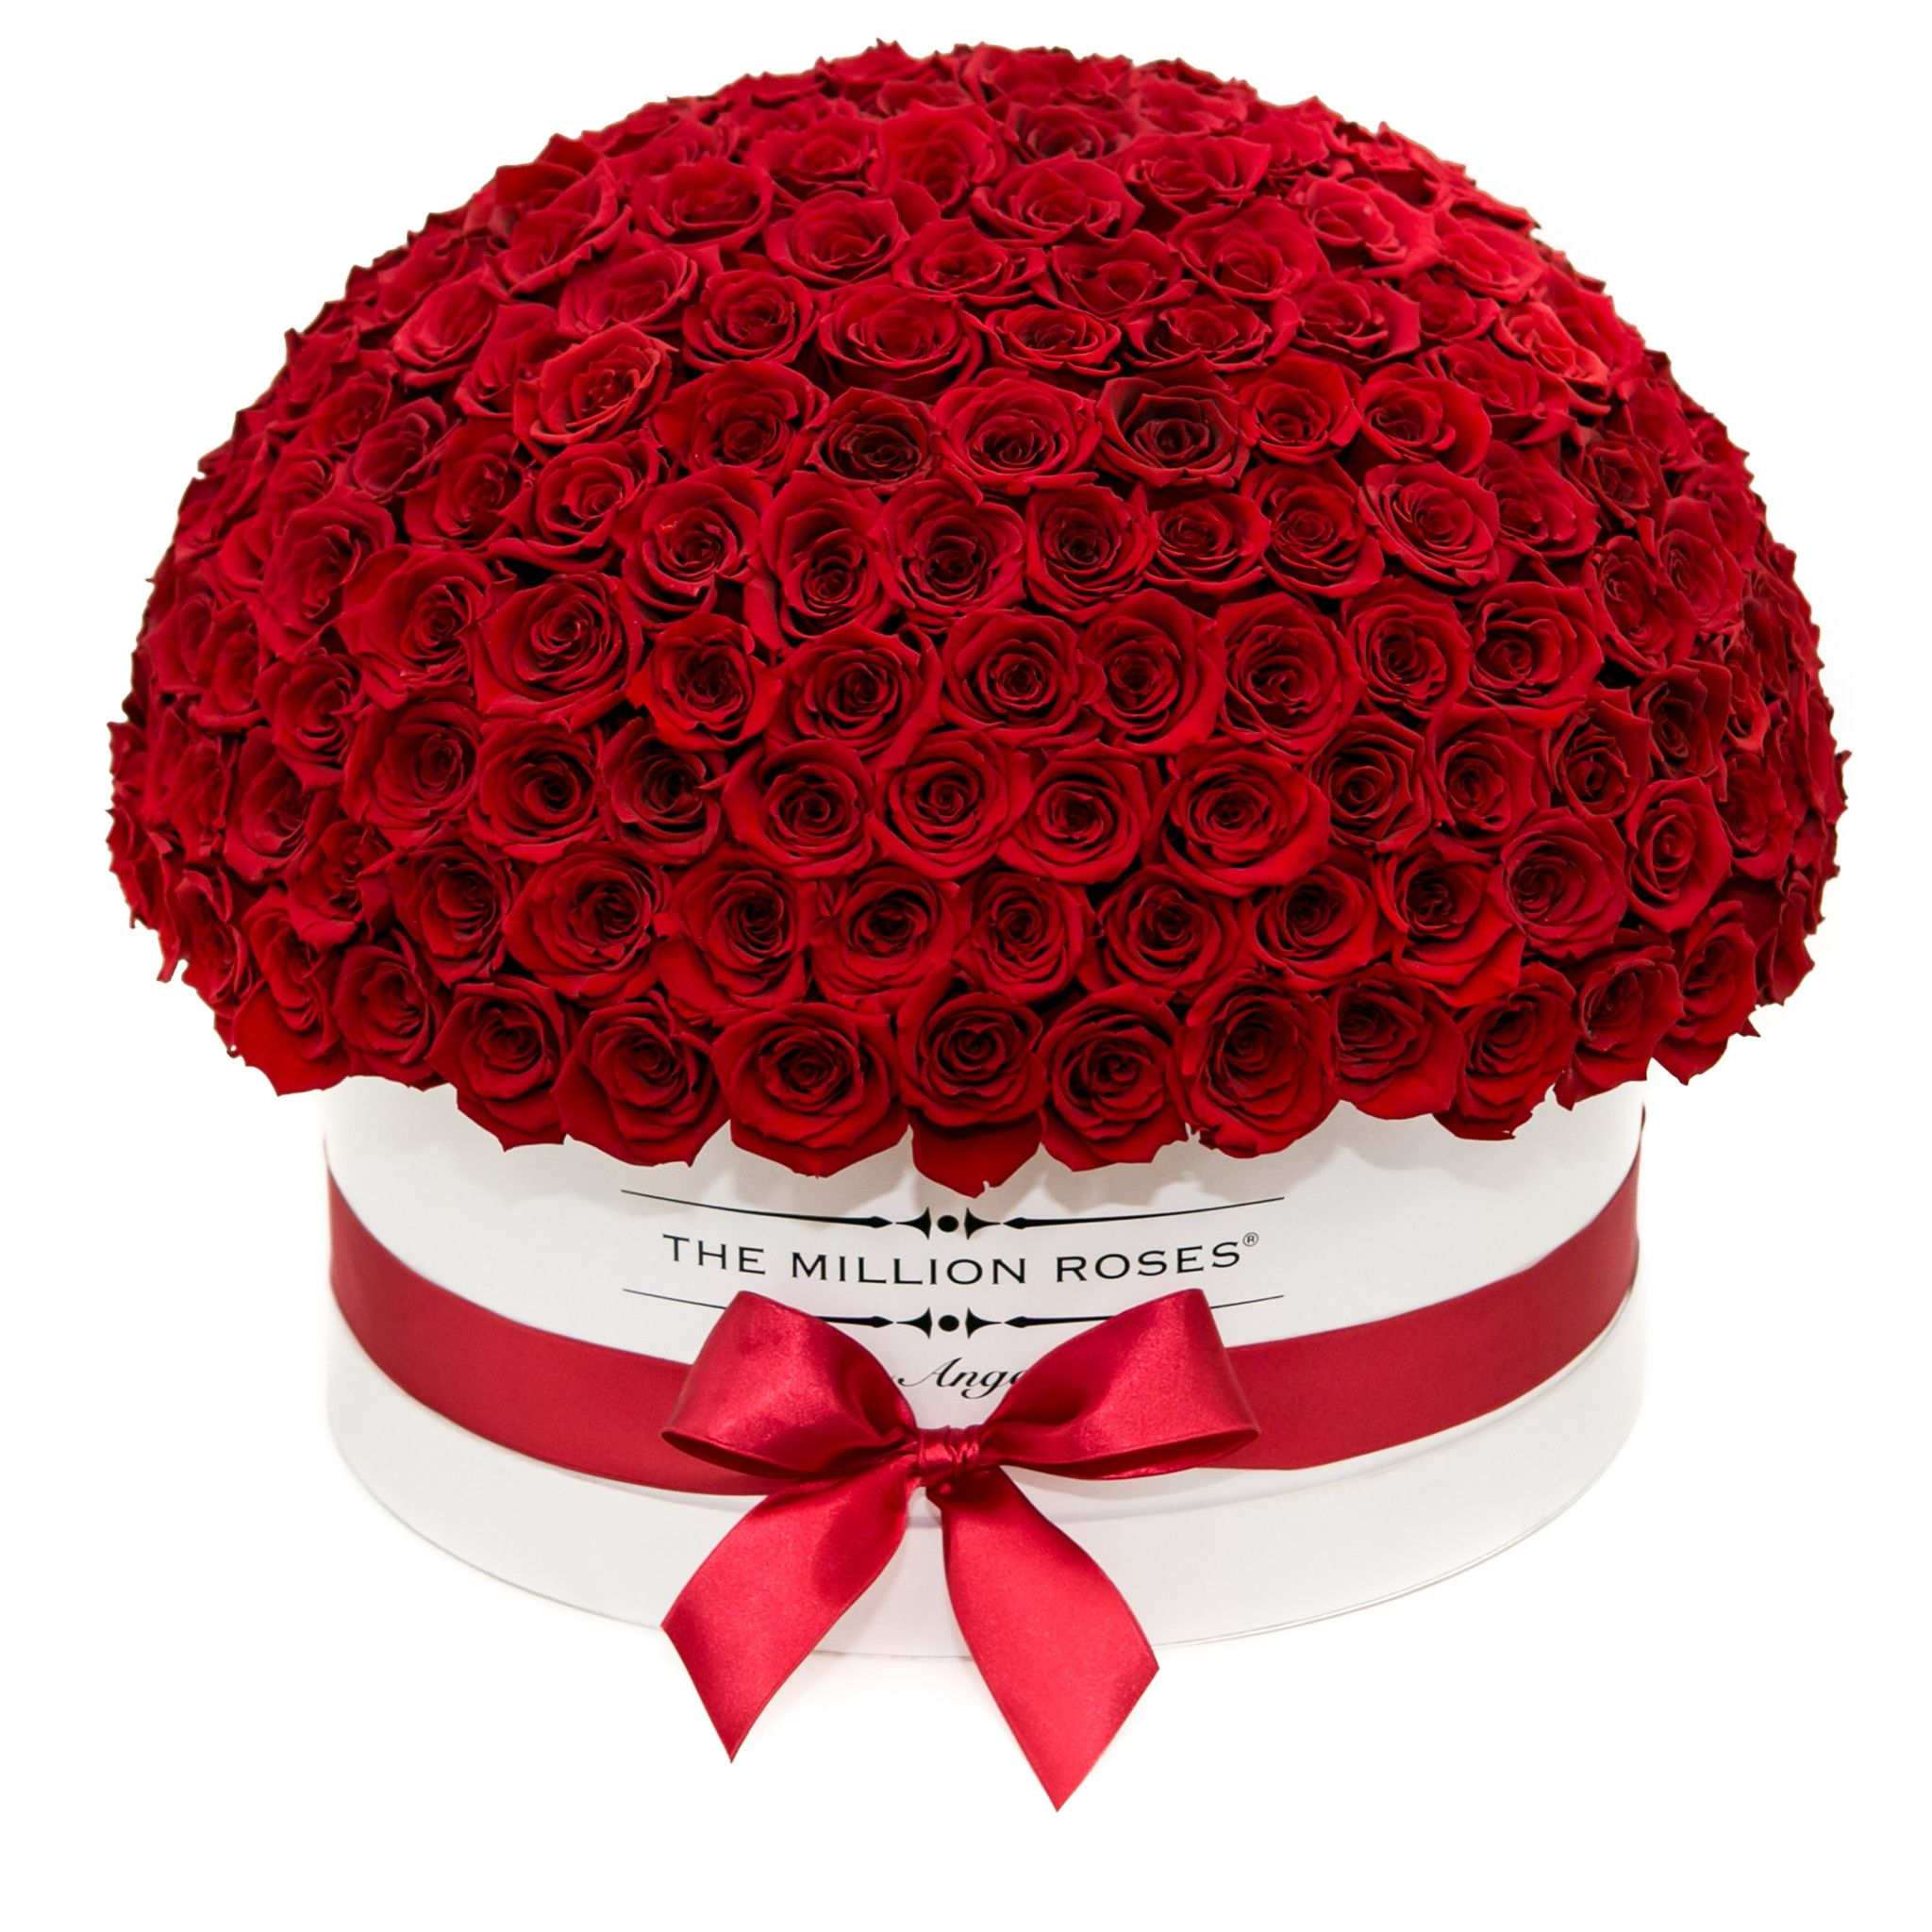 The Million Deluxe Dome Box Black Dark Red Dome Roses Birthday Flowers Arrangements Preserved Roses Box Roses